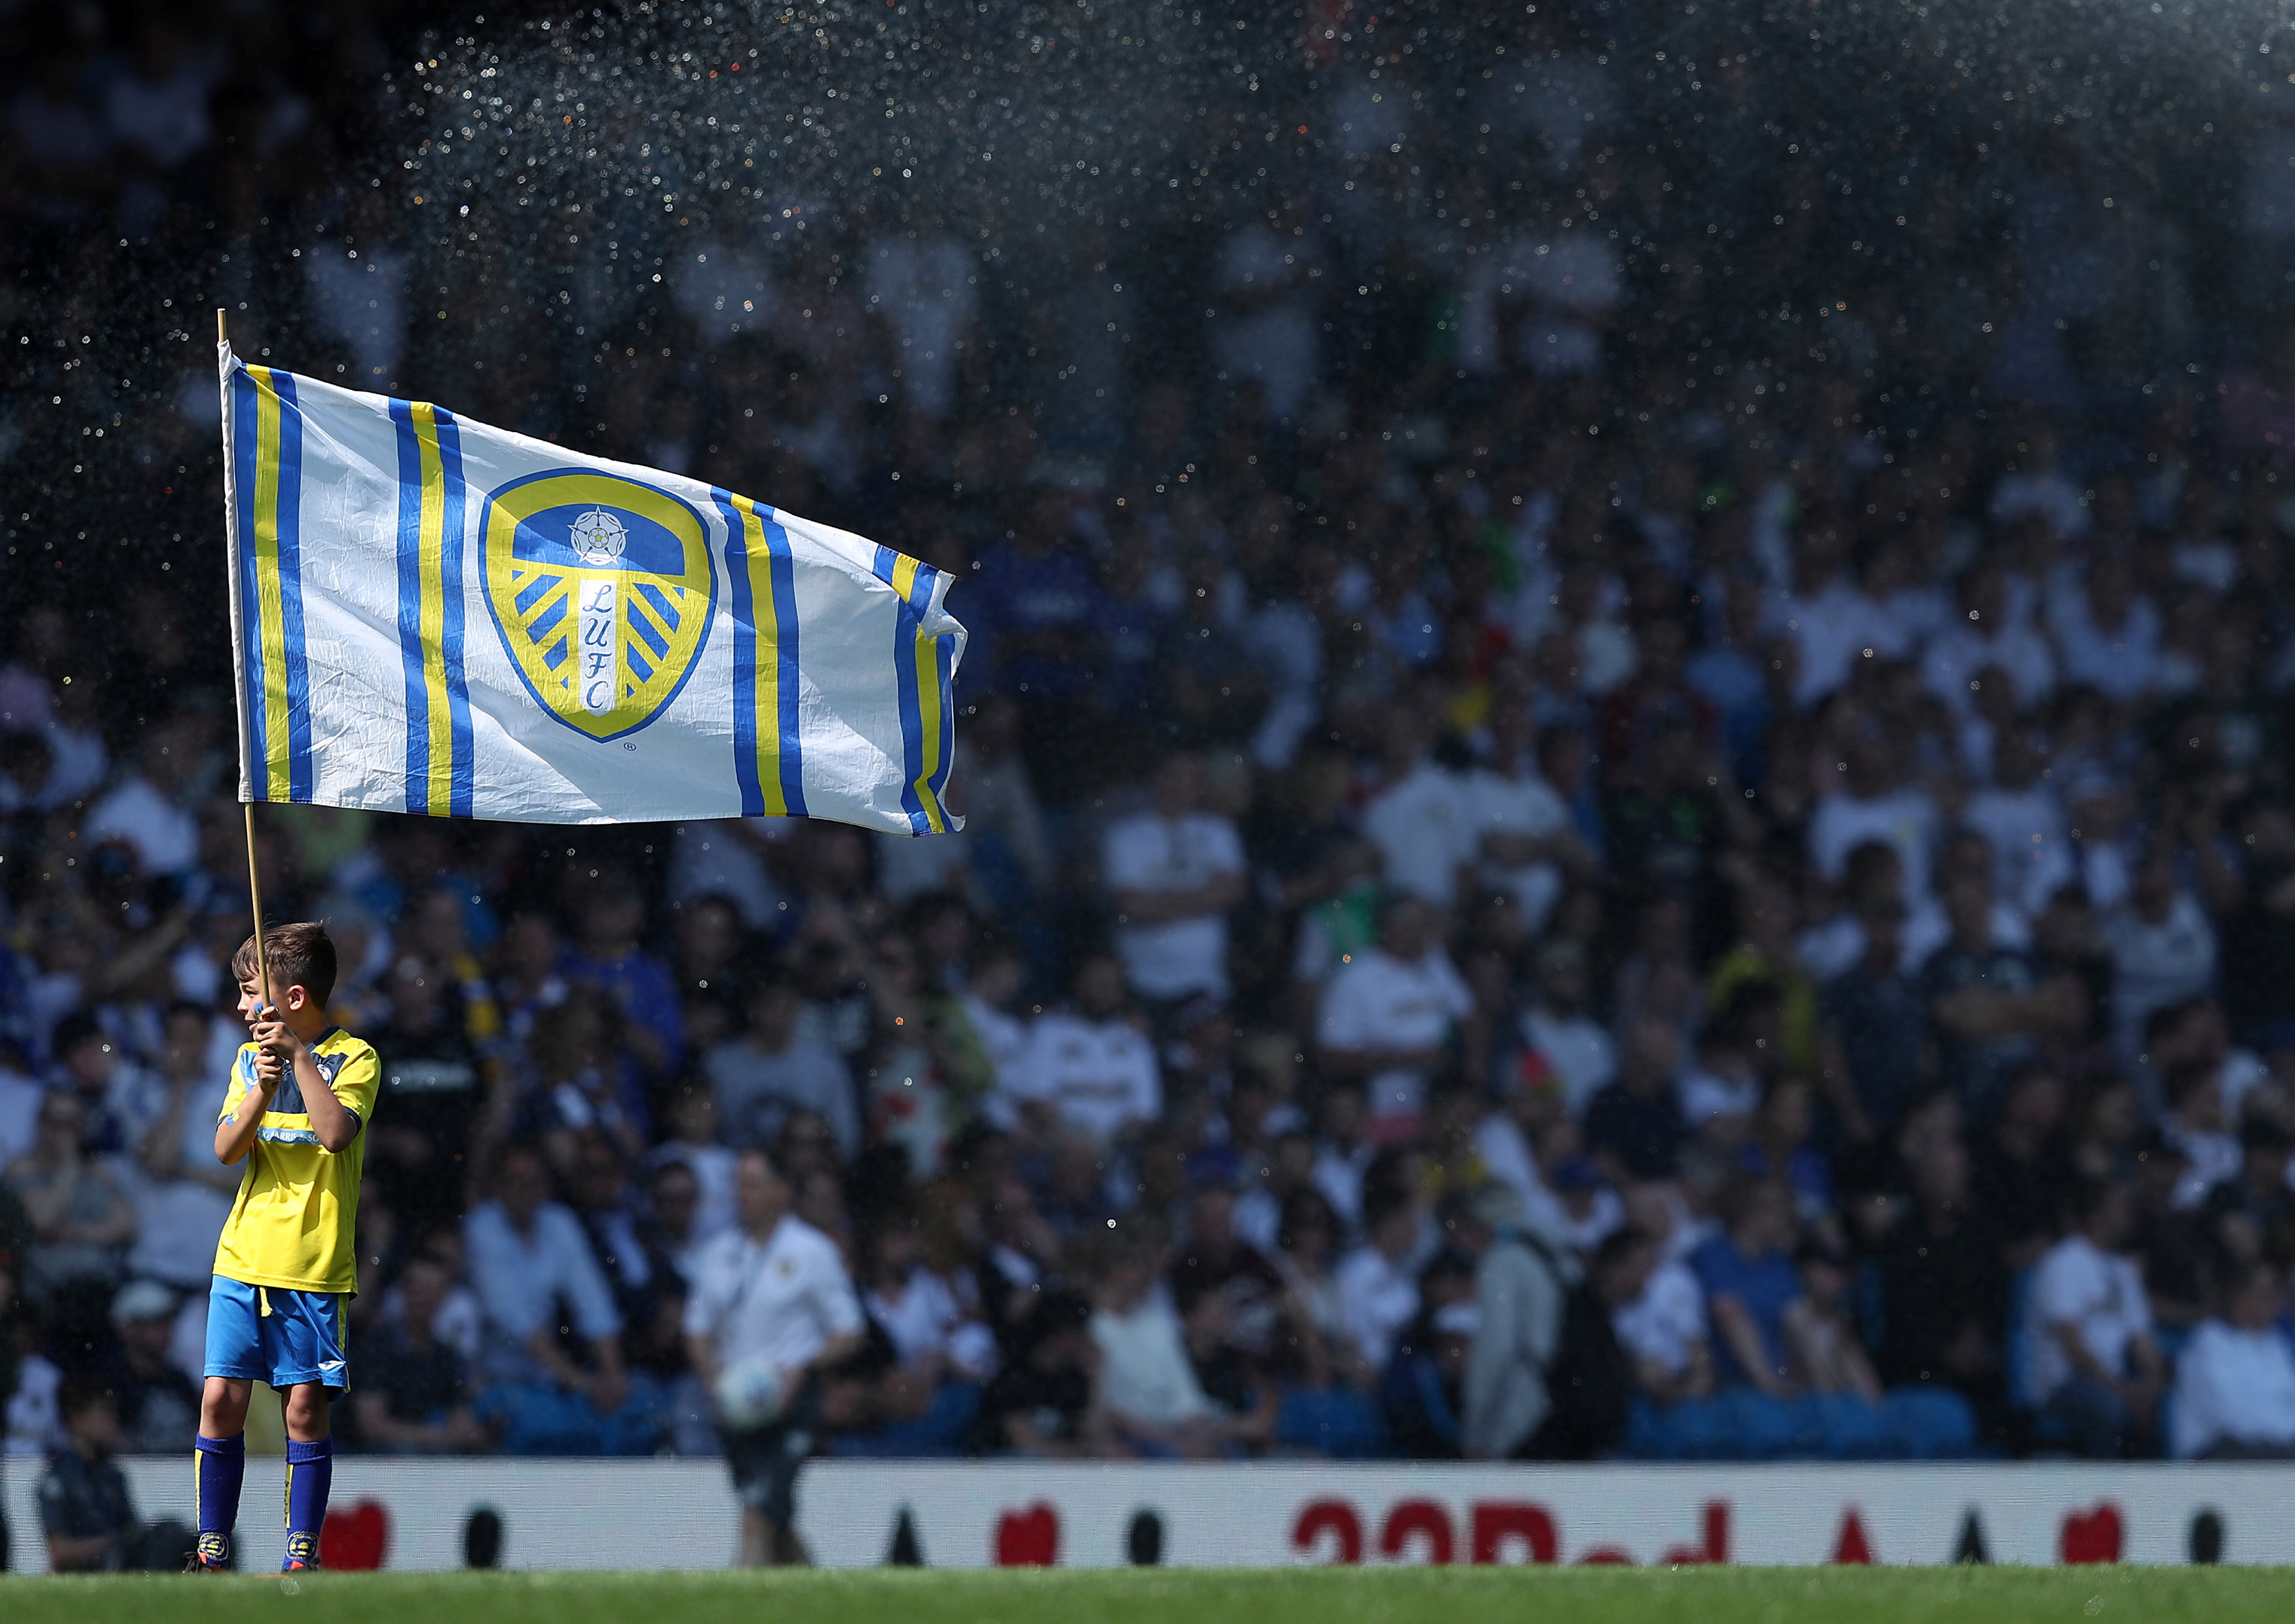 Leeds United fans and rivalries